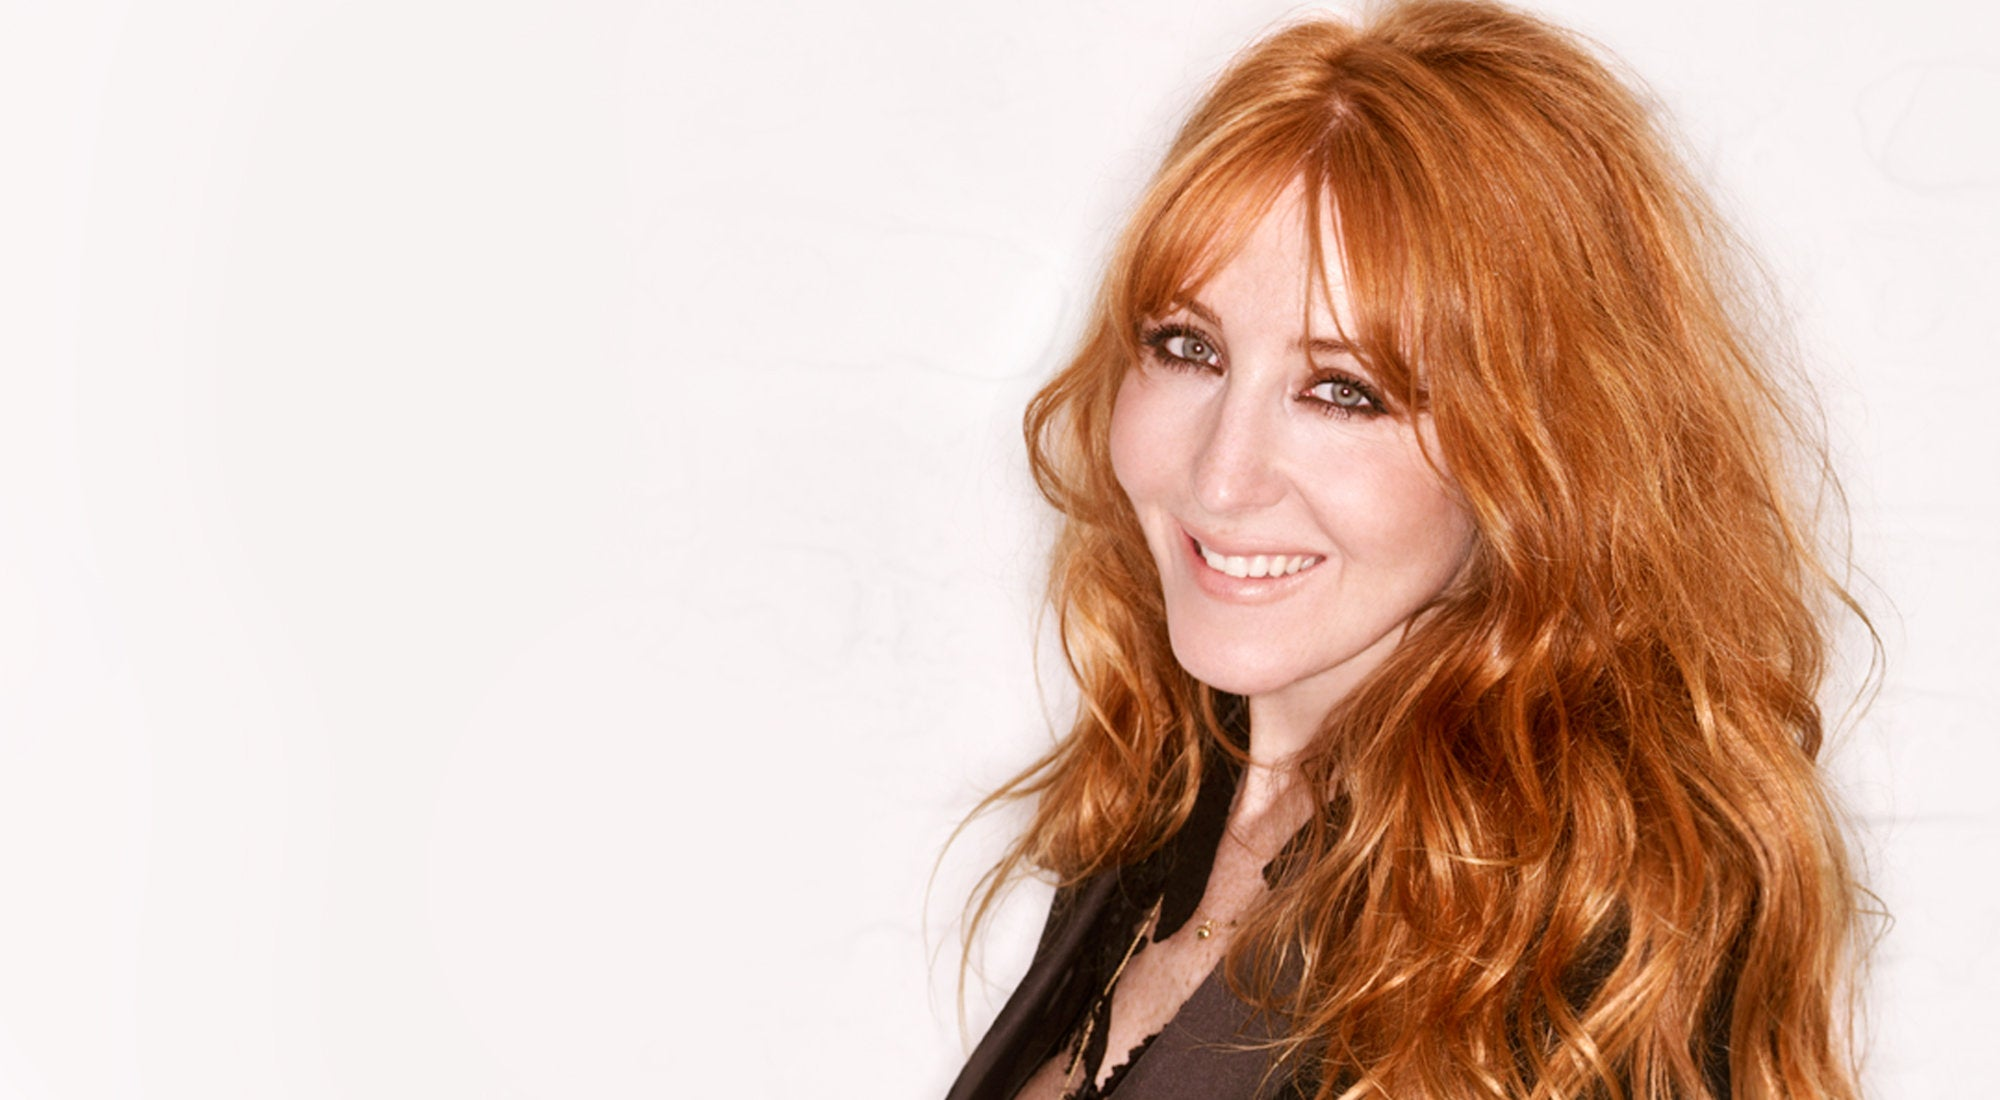 Charlotte Tilbury's Makeup Coming to Sephora